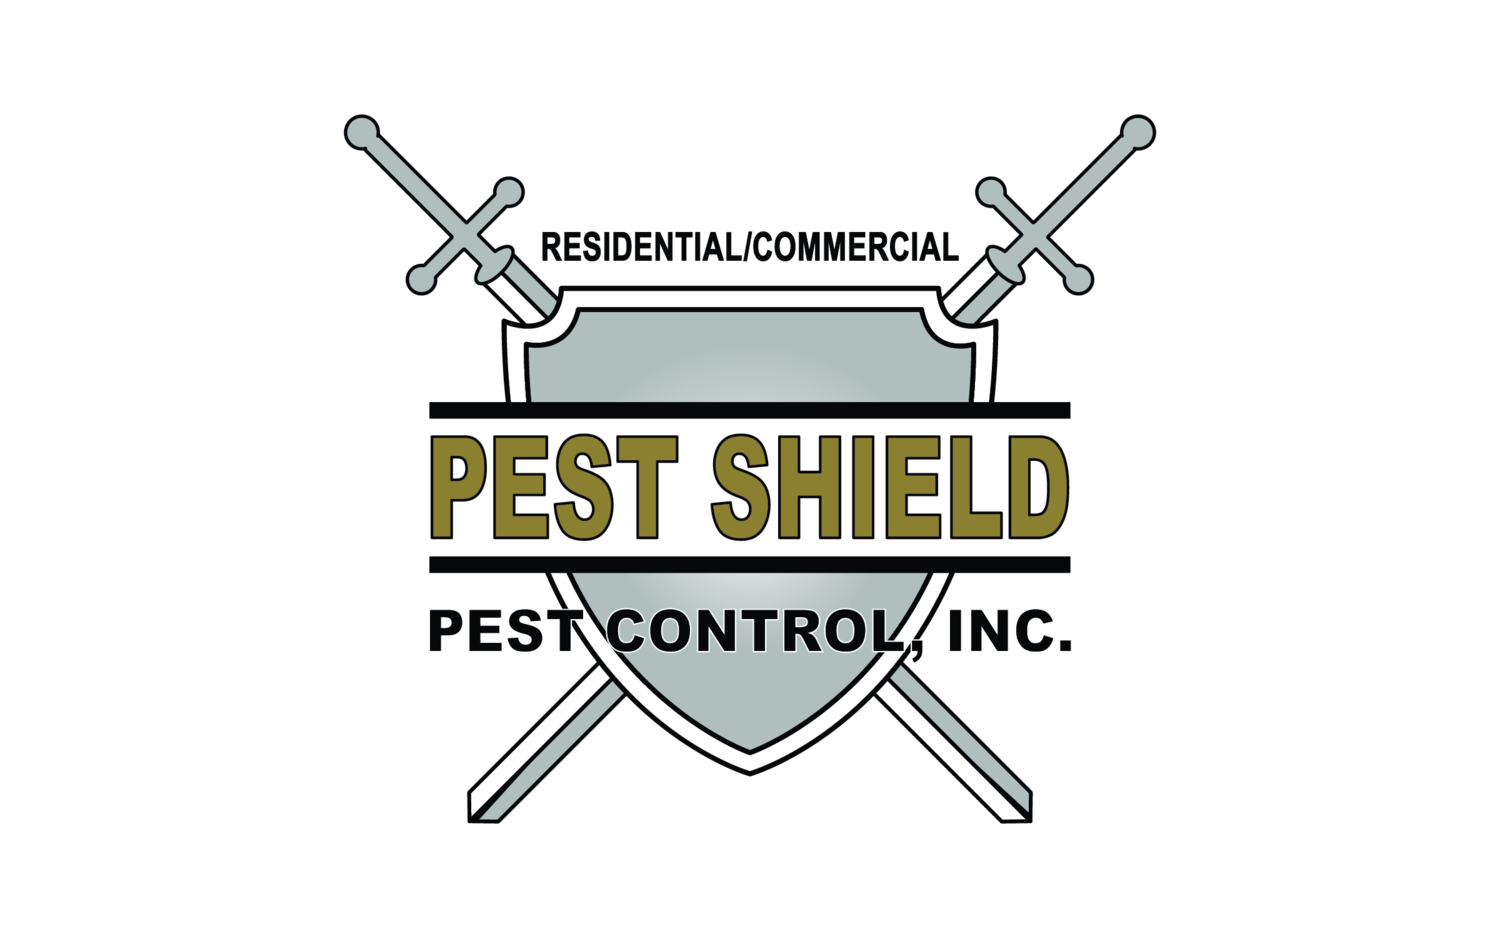 by Pest Shield Pest Control Inc.